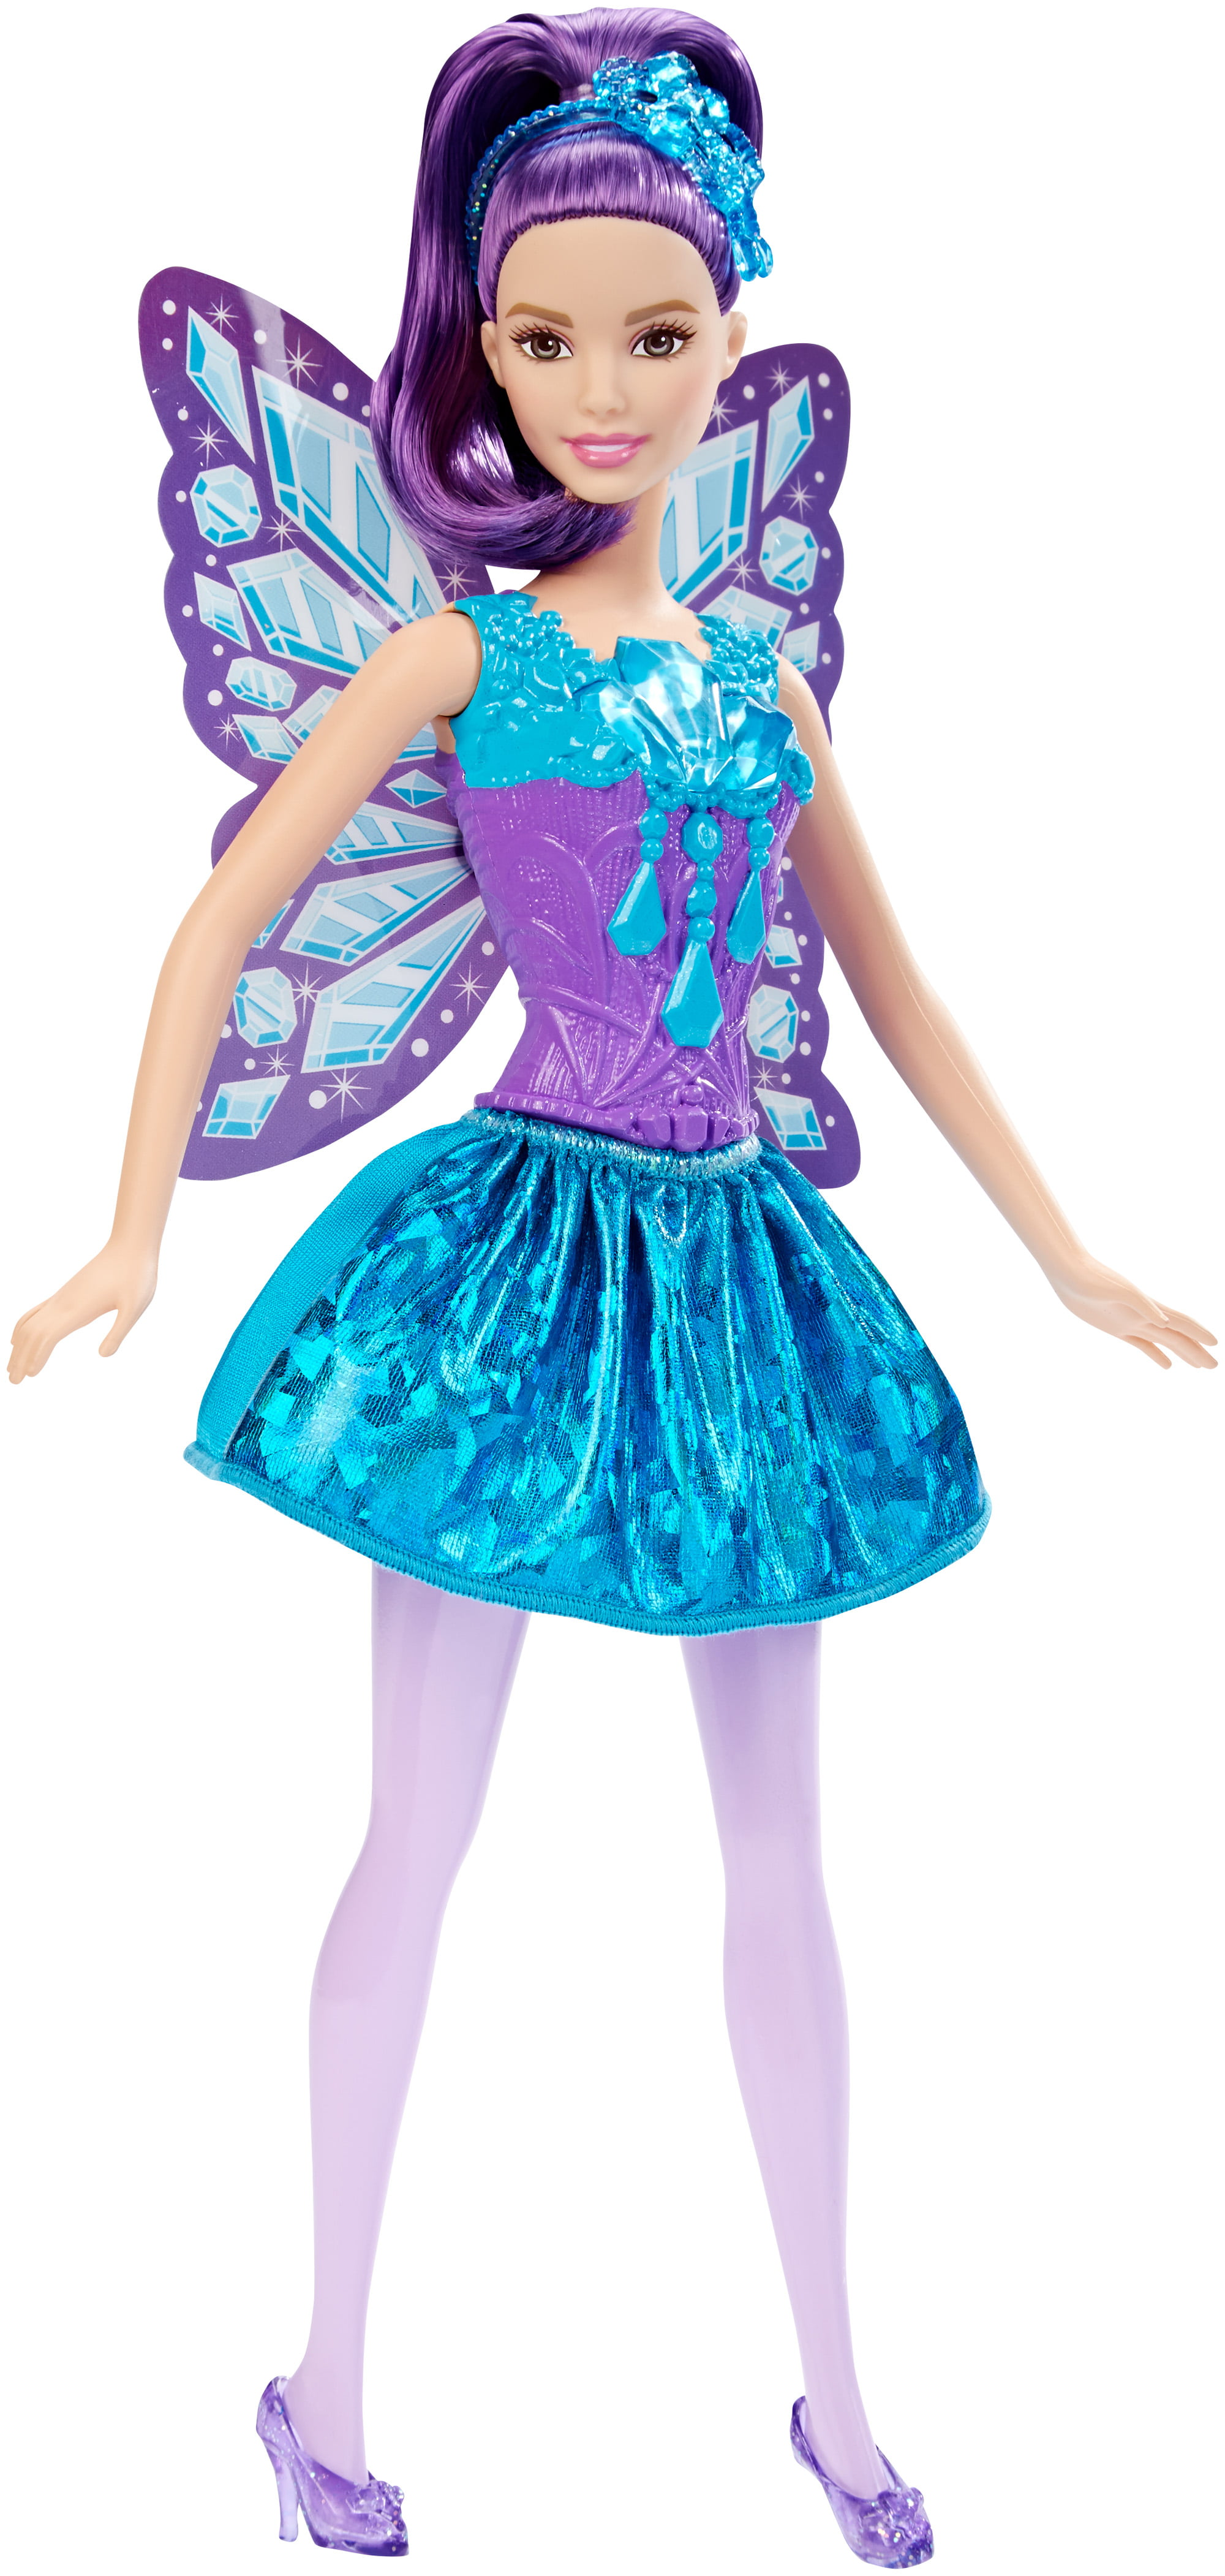 Barbie Fairy Gem Fashion Doll by Mattel